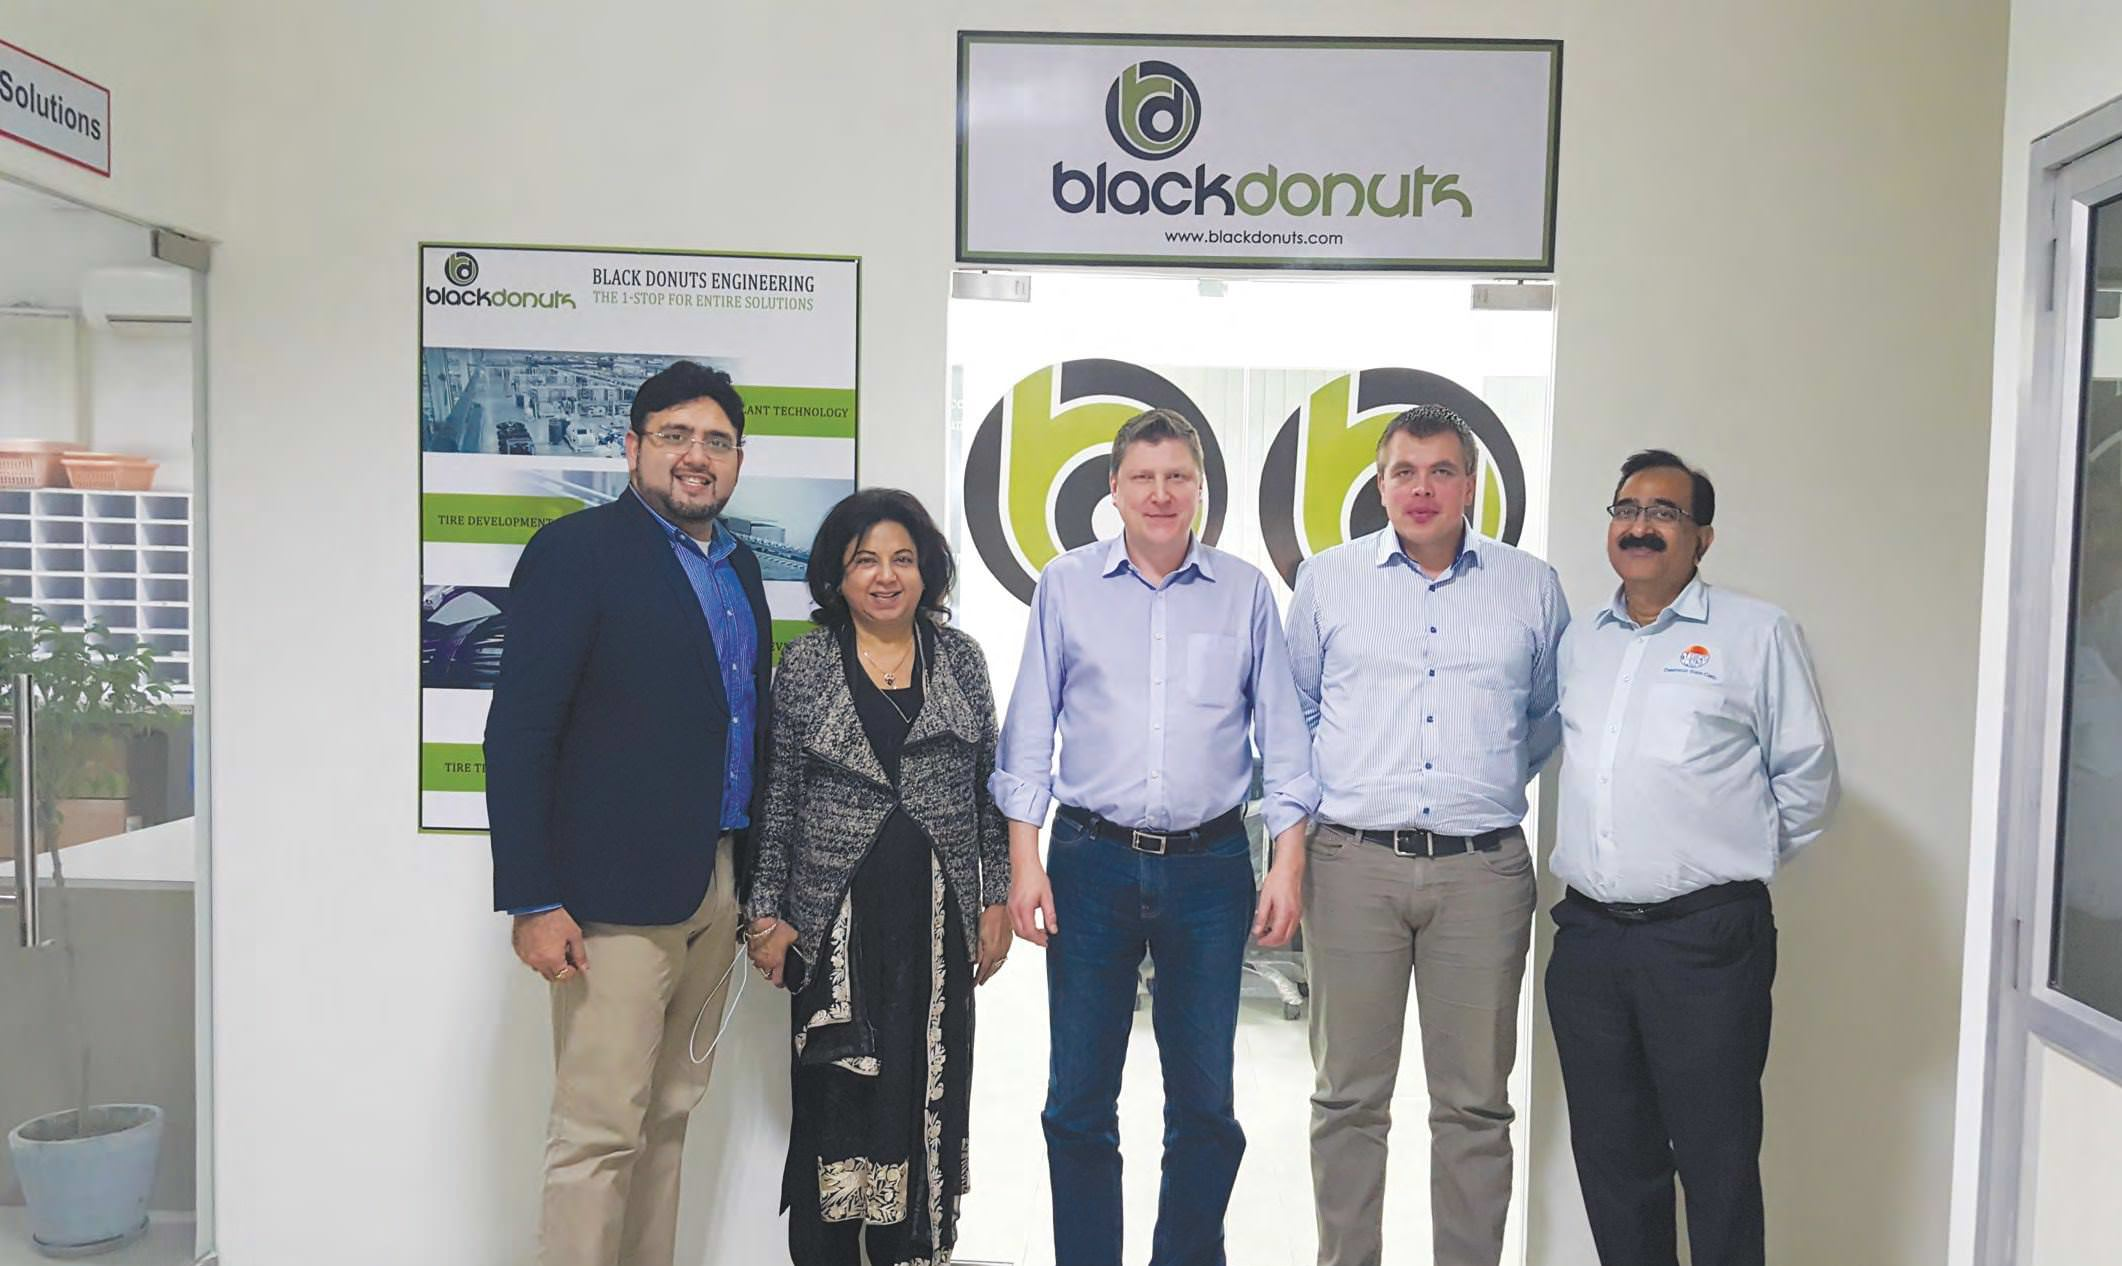 Black Donuts In India: One-Stop For Entire Solutions